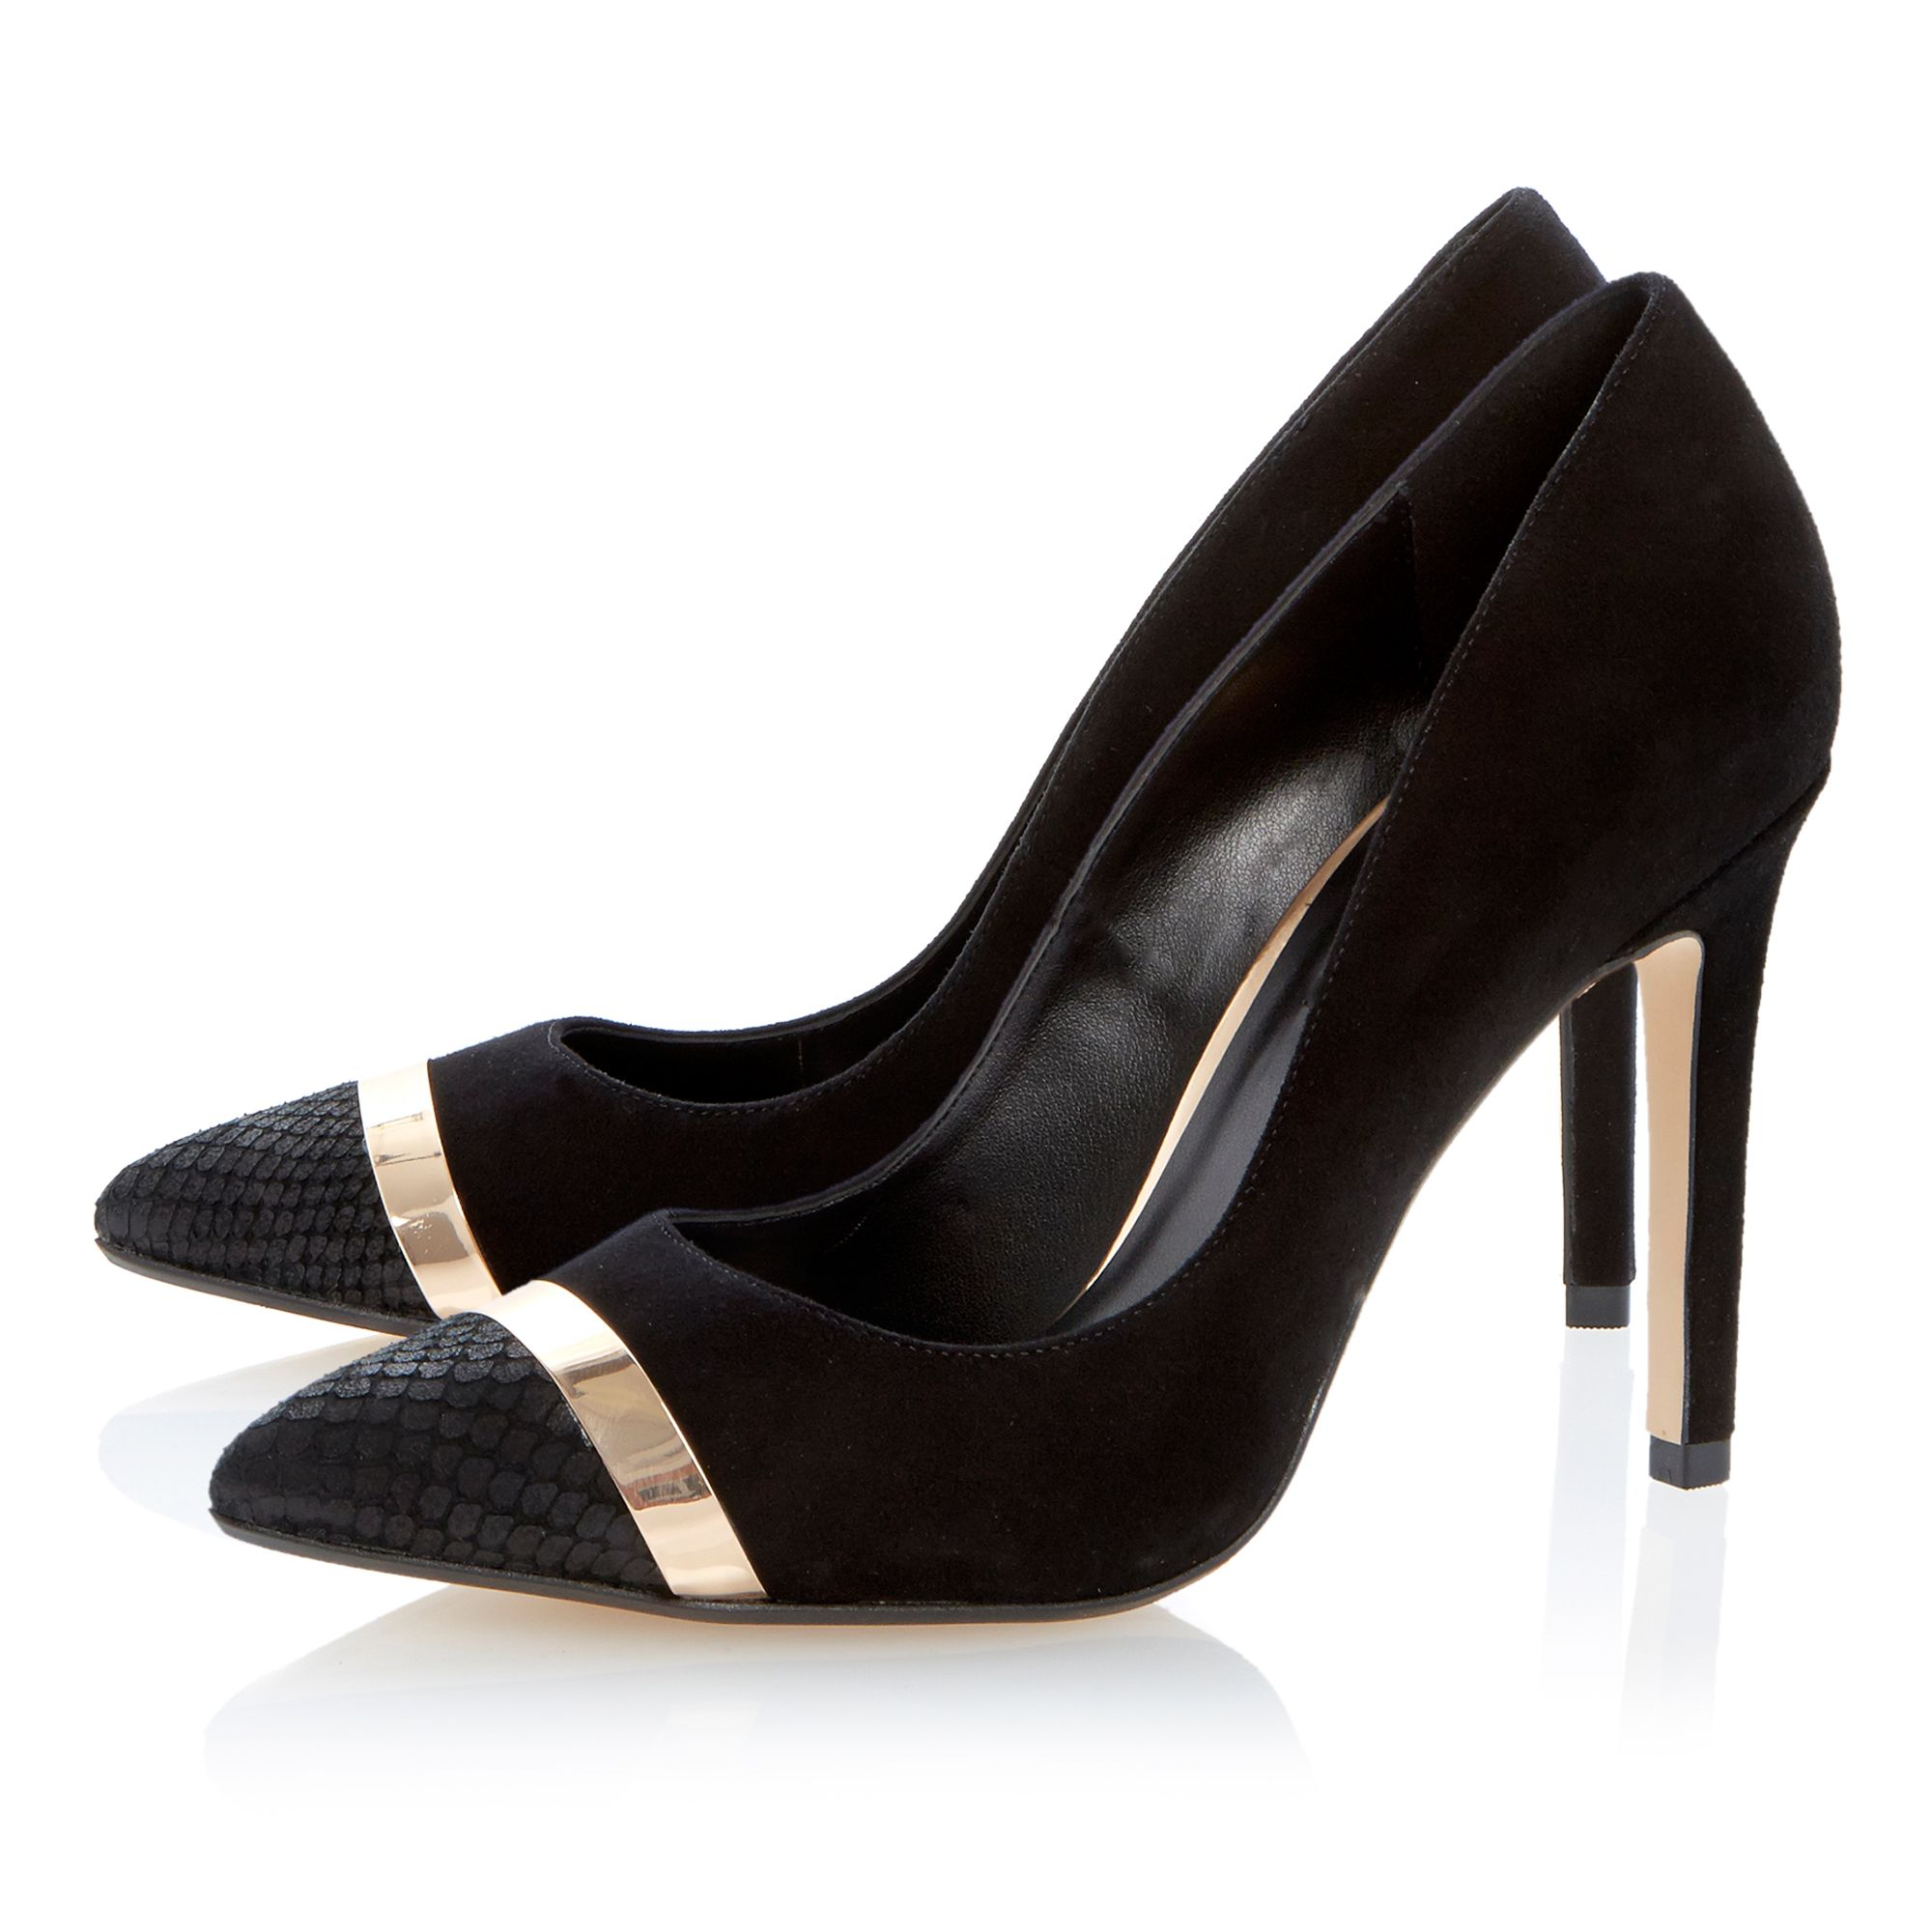 Bellini leather pointed toe stiletto court shoes